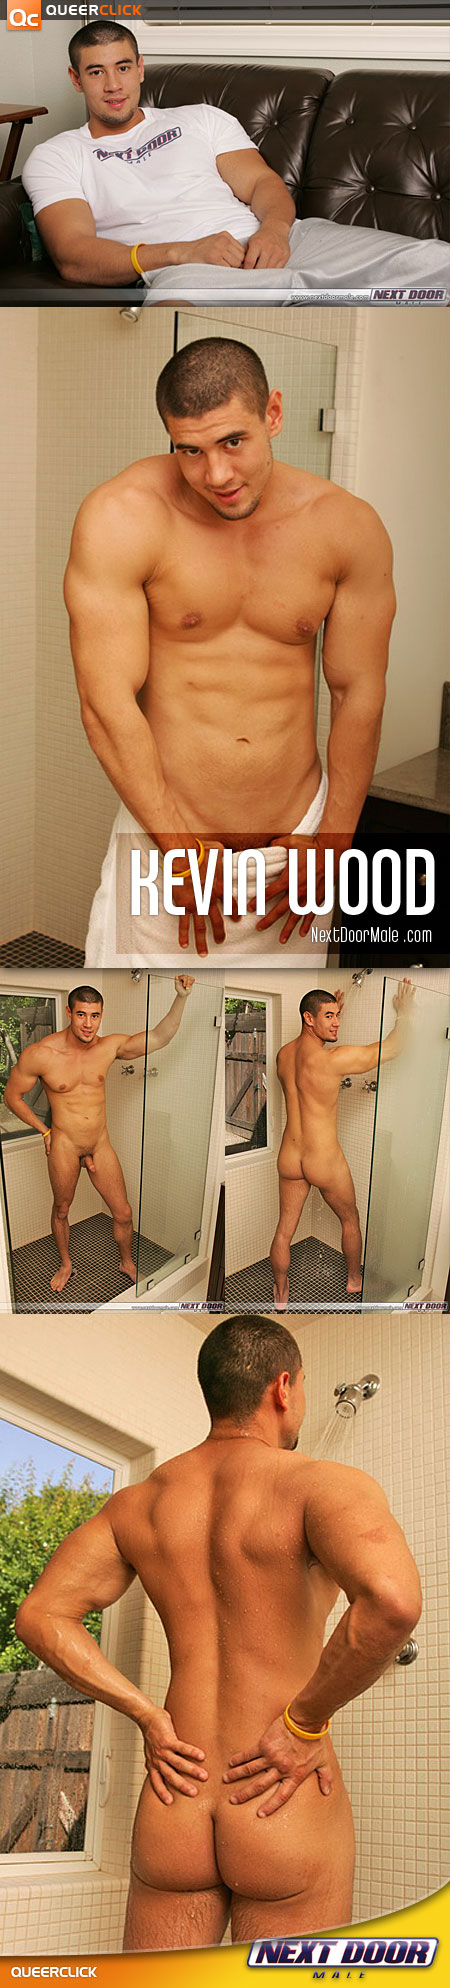 Next Door Male: Kevin Wood